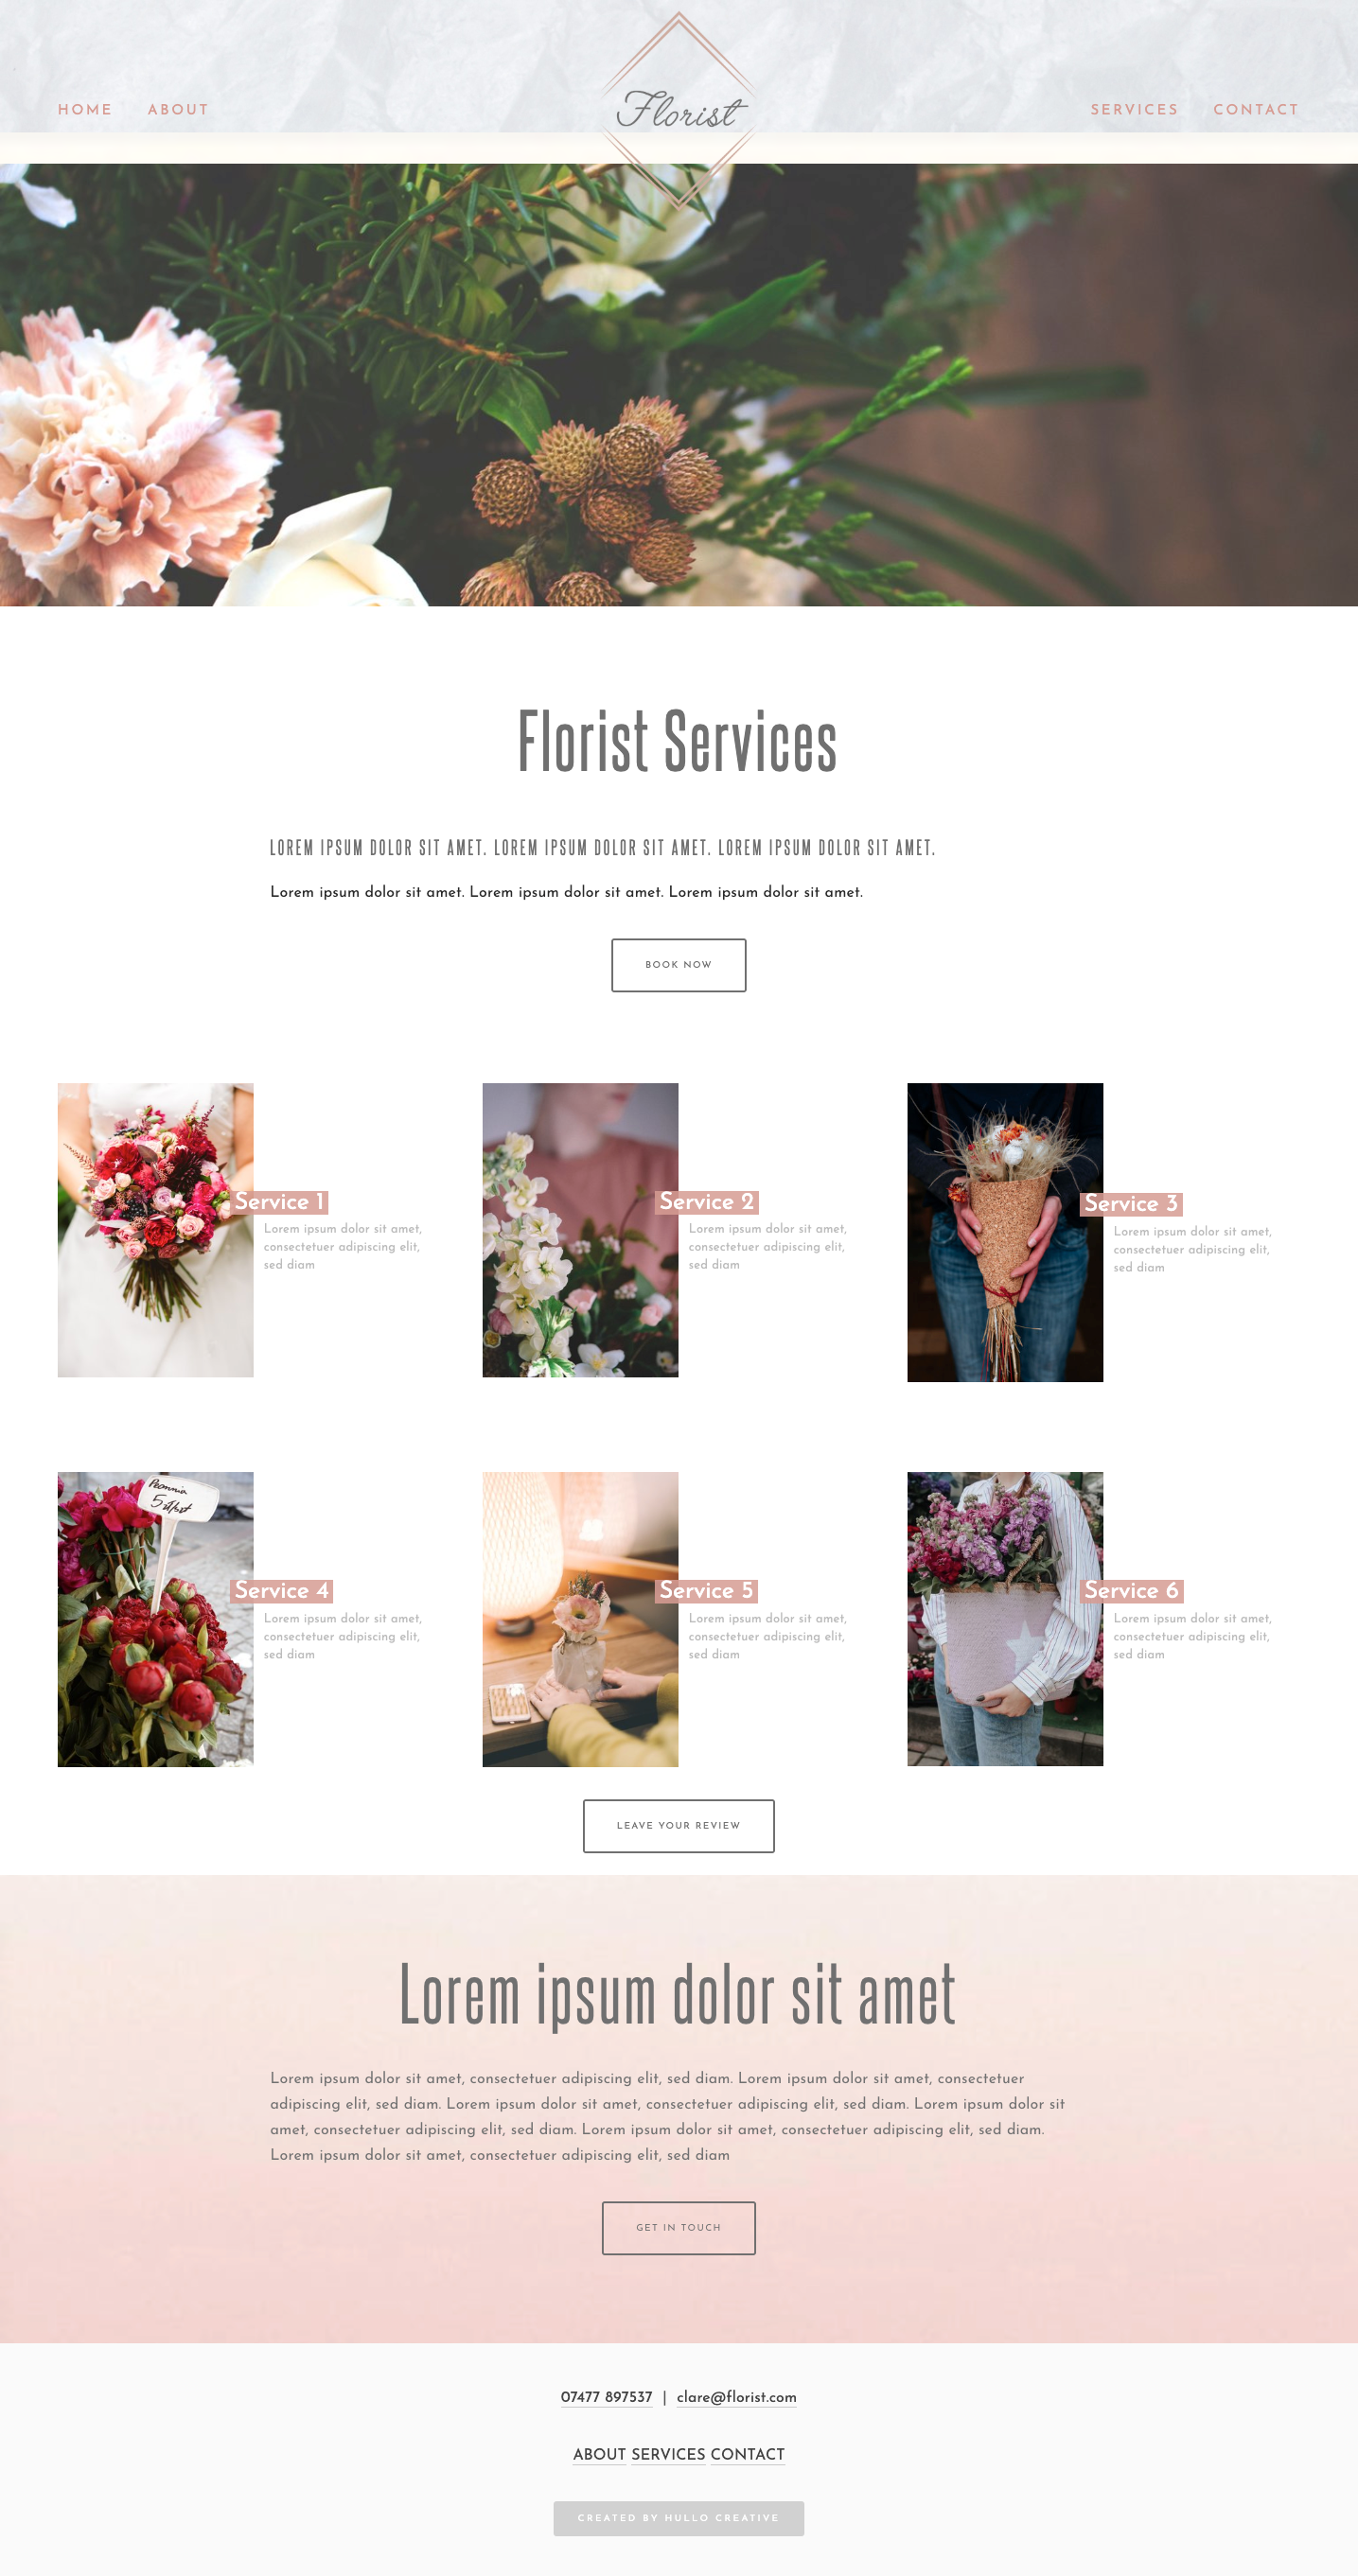 screencapture-story-template-squarespace-services-2019-07-22-12_02_34.png